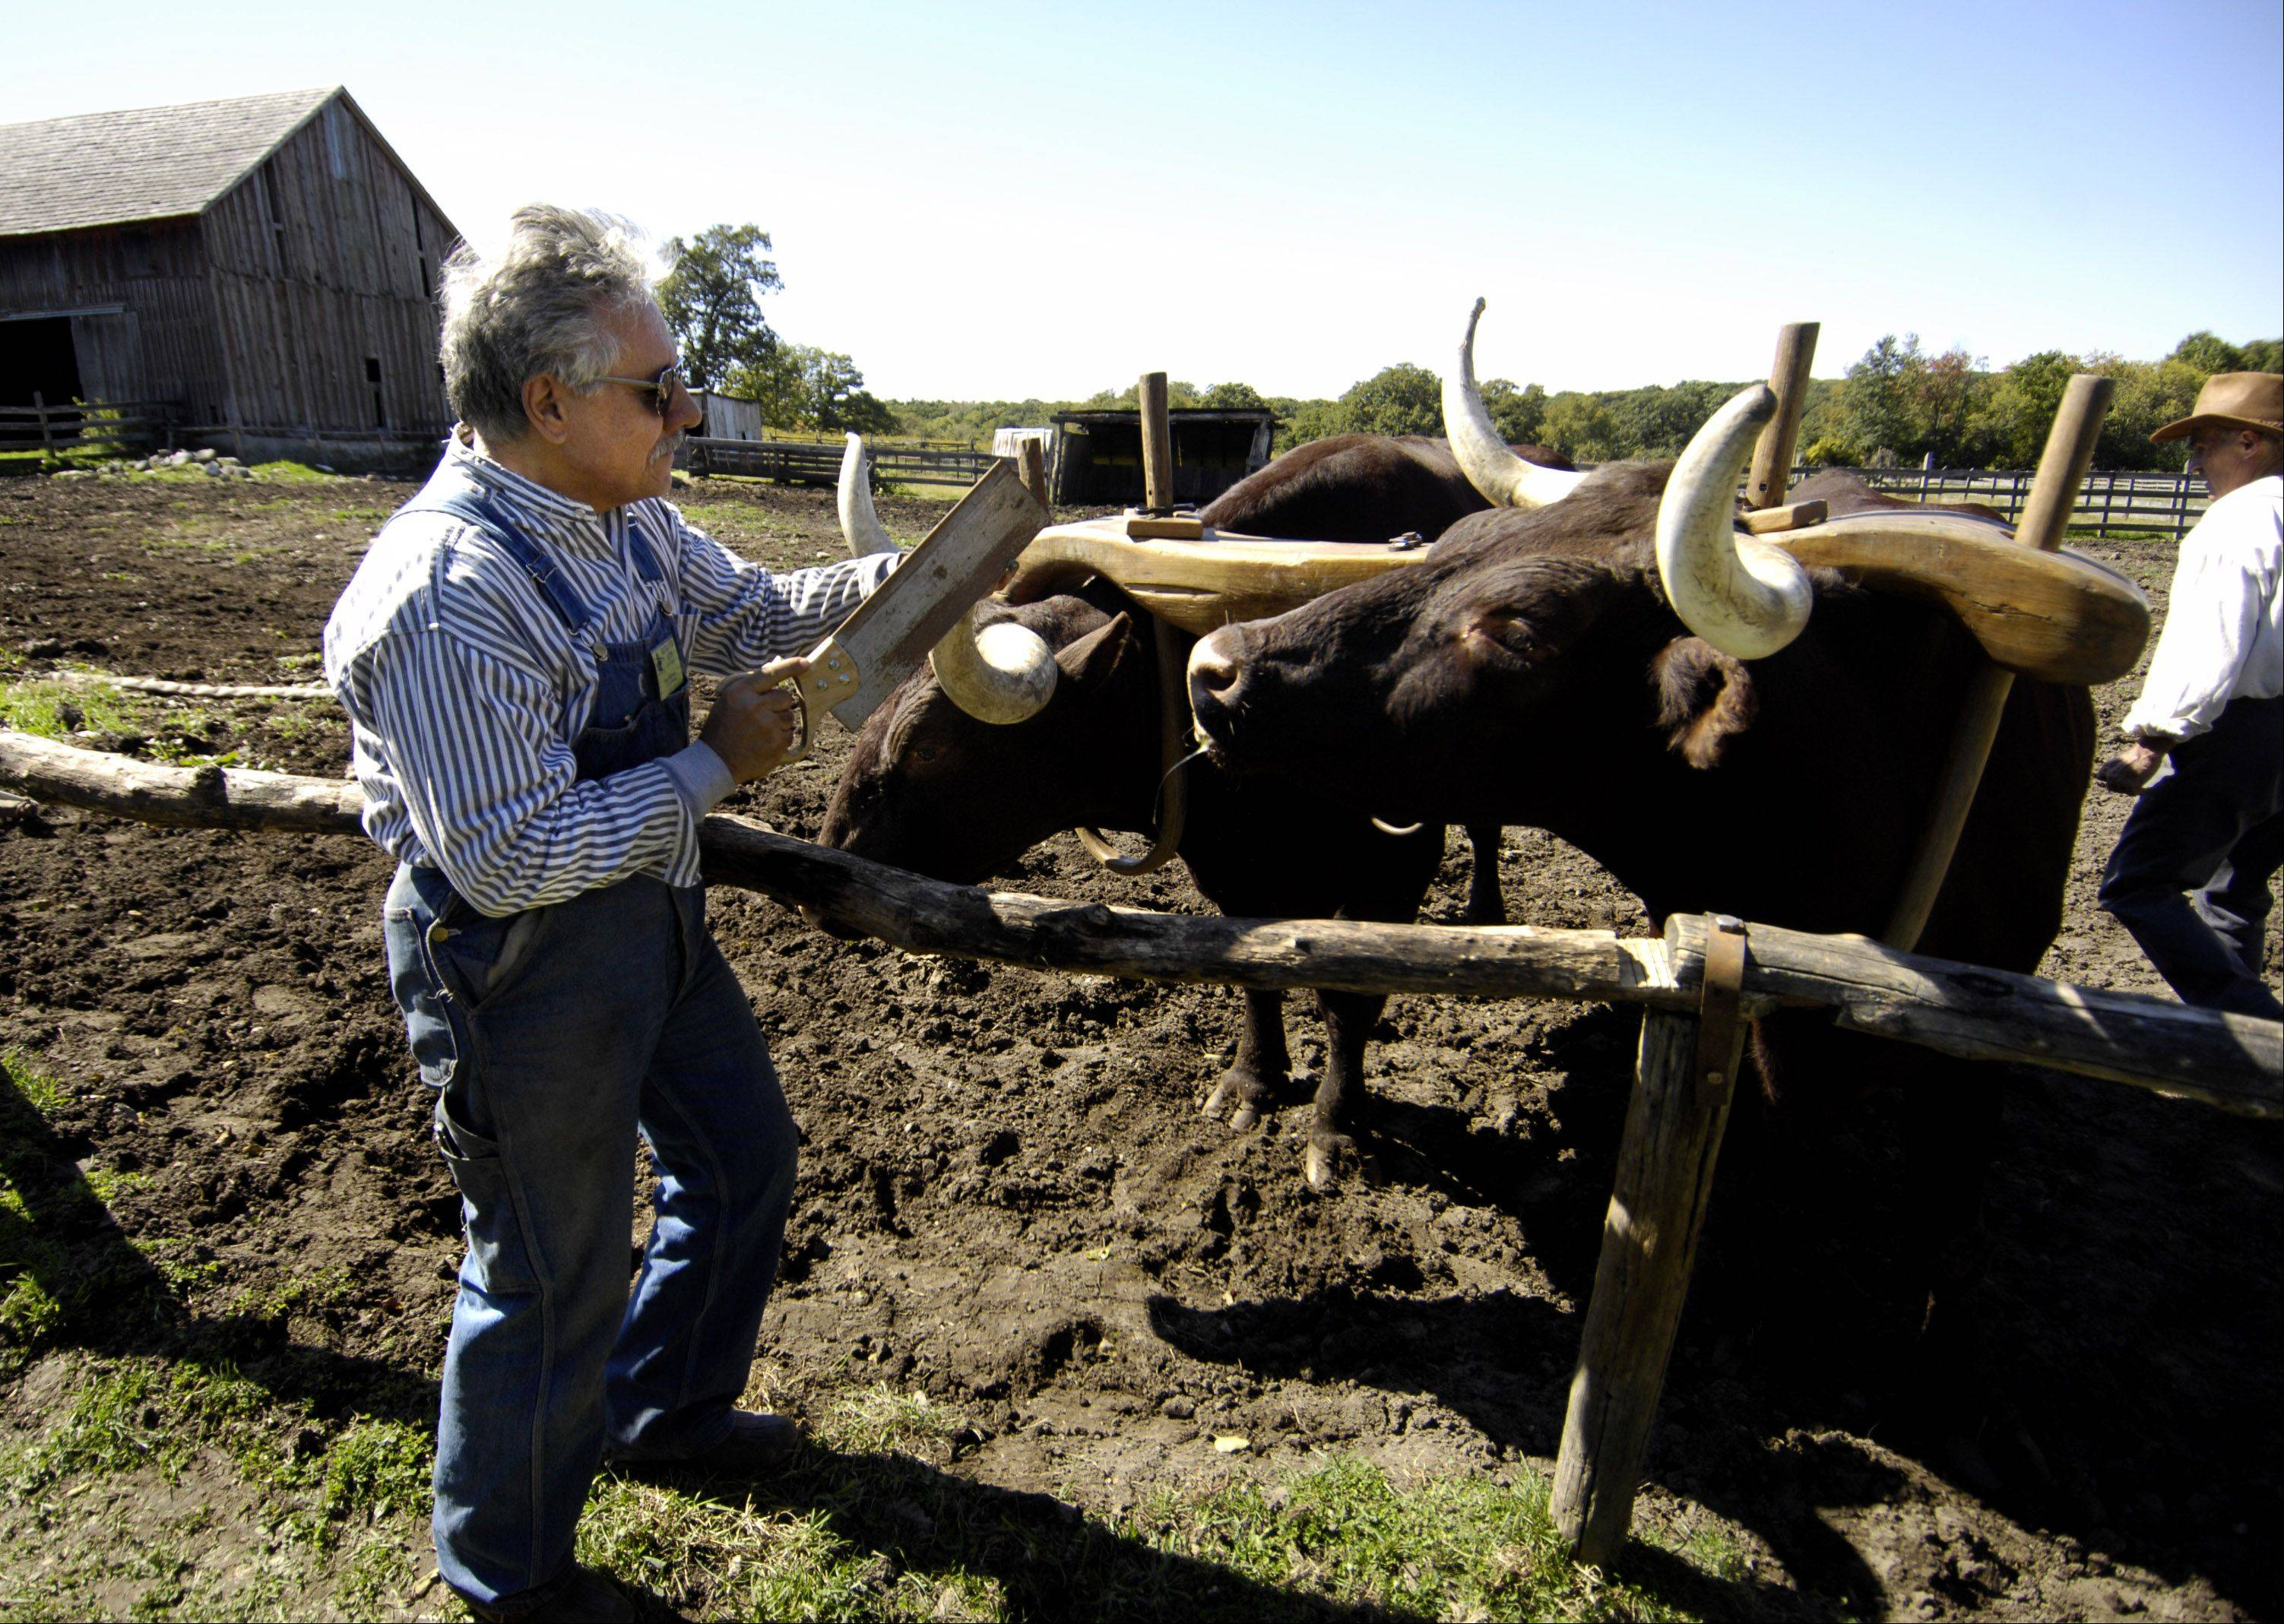 Jack Saccoia saws off the horn tip of Doc, a 14-year-old oxen, at Garfield Farm Museum 30th annual Harvest Days. Saccoia, a volunteer exhibitor at the farm, was preparing the animal for a new round brass end fitting to help protect the horn and other animals.